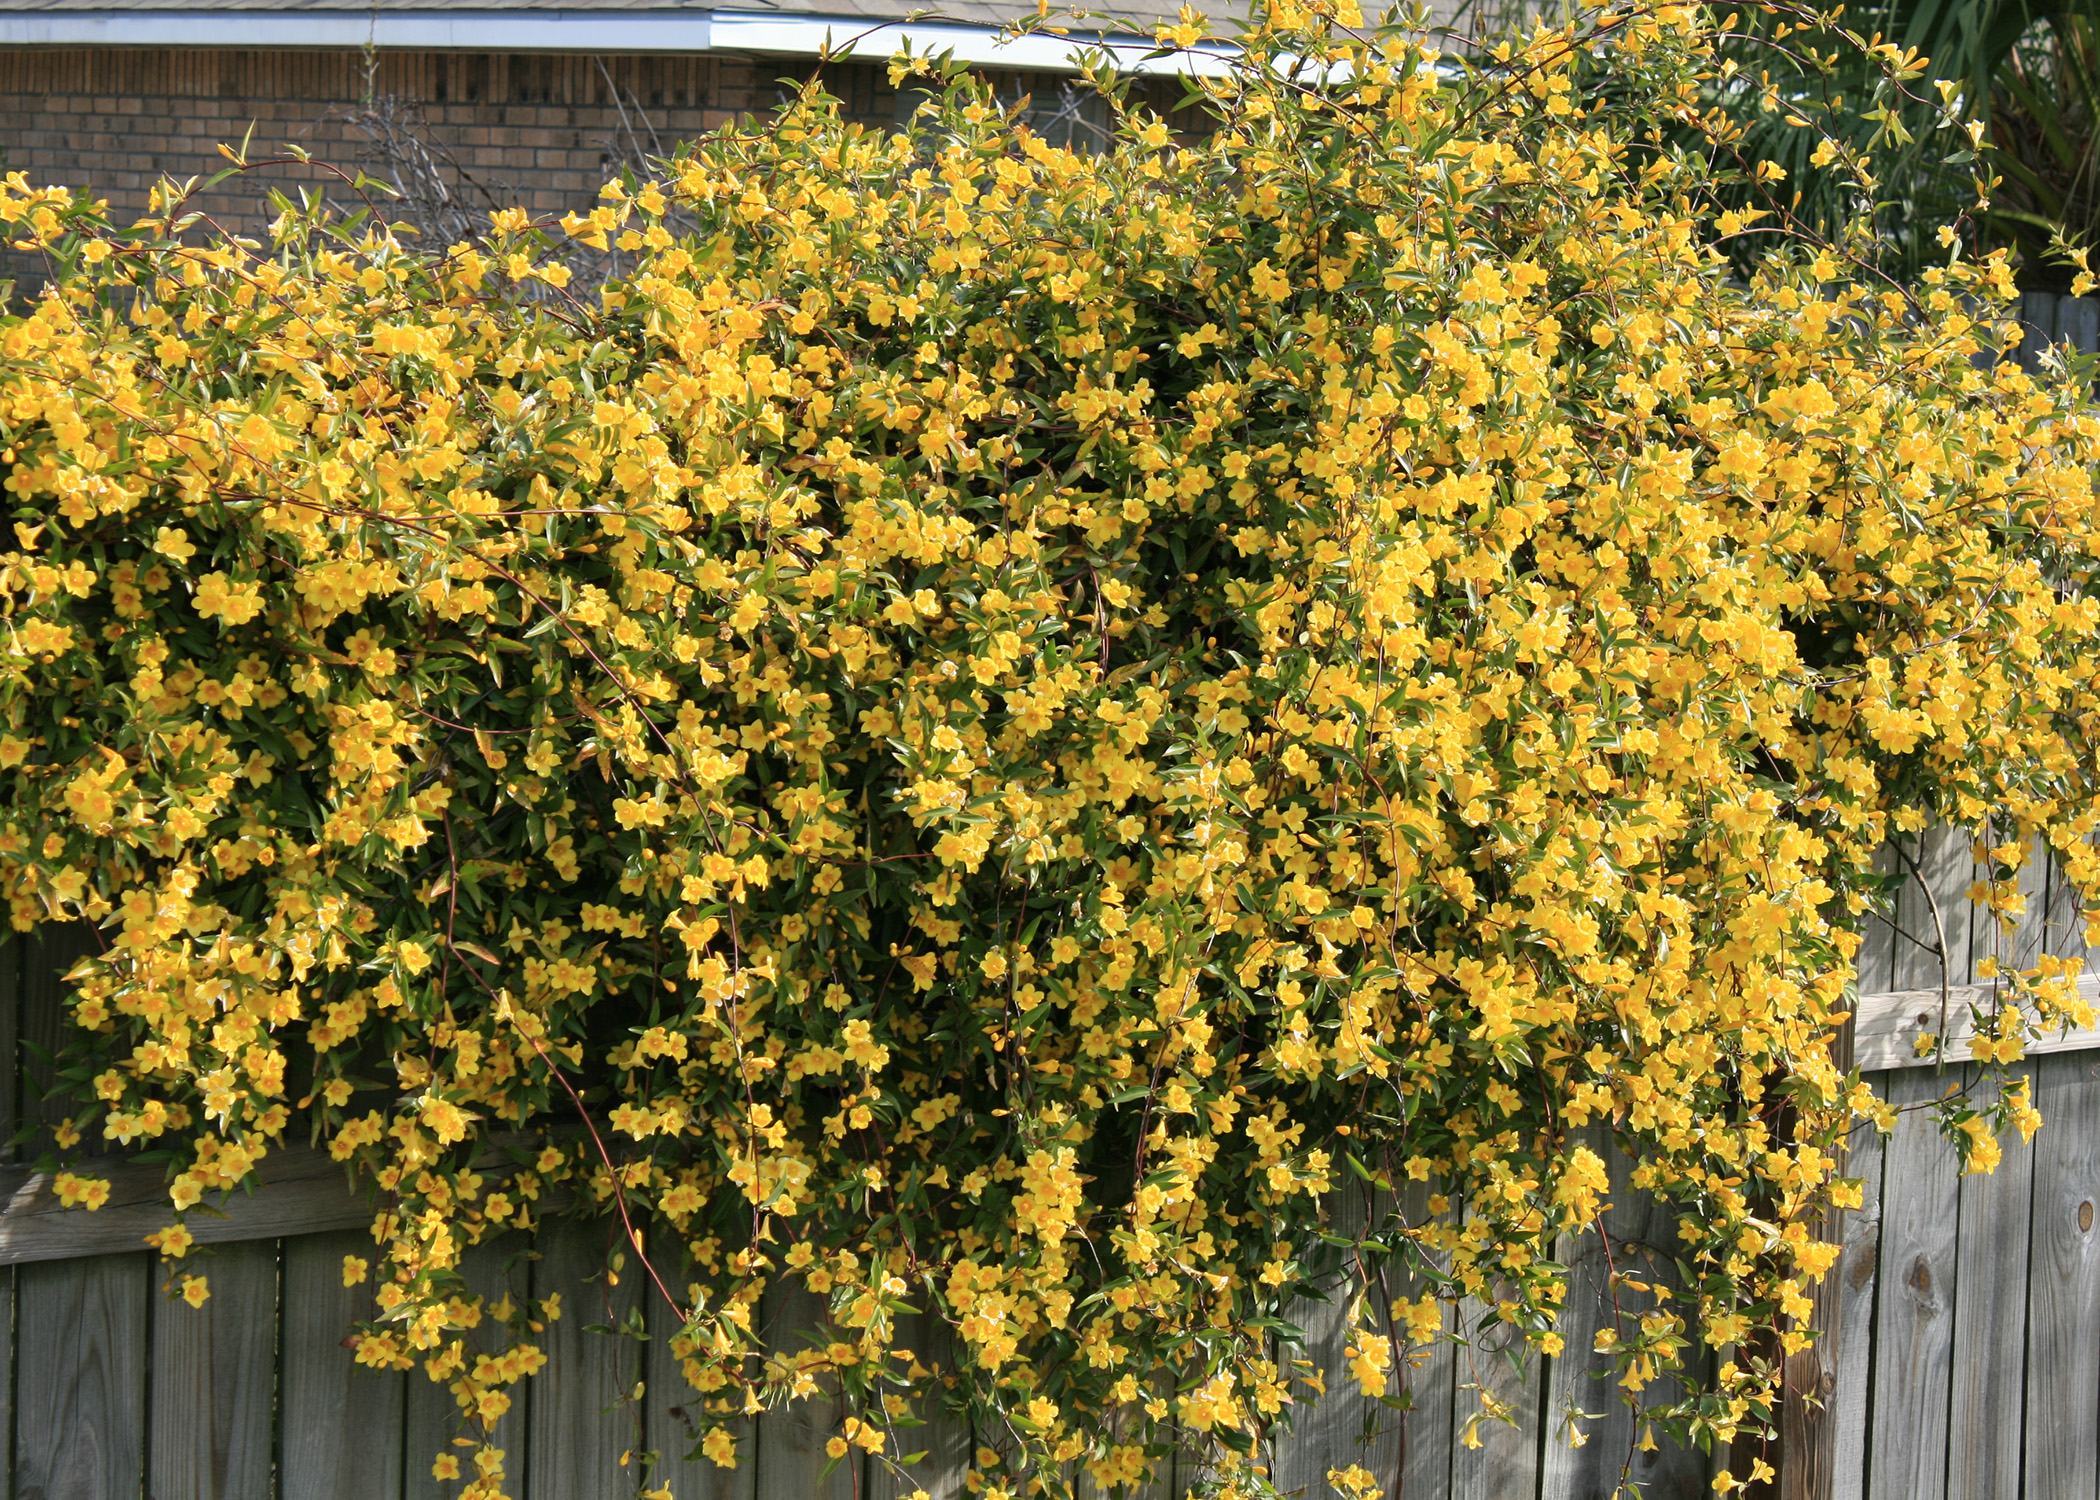 Plant Flowering Vines Now For Great Show Next Spring